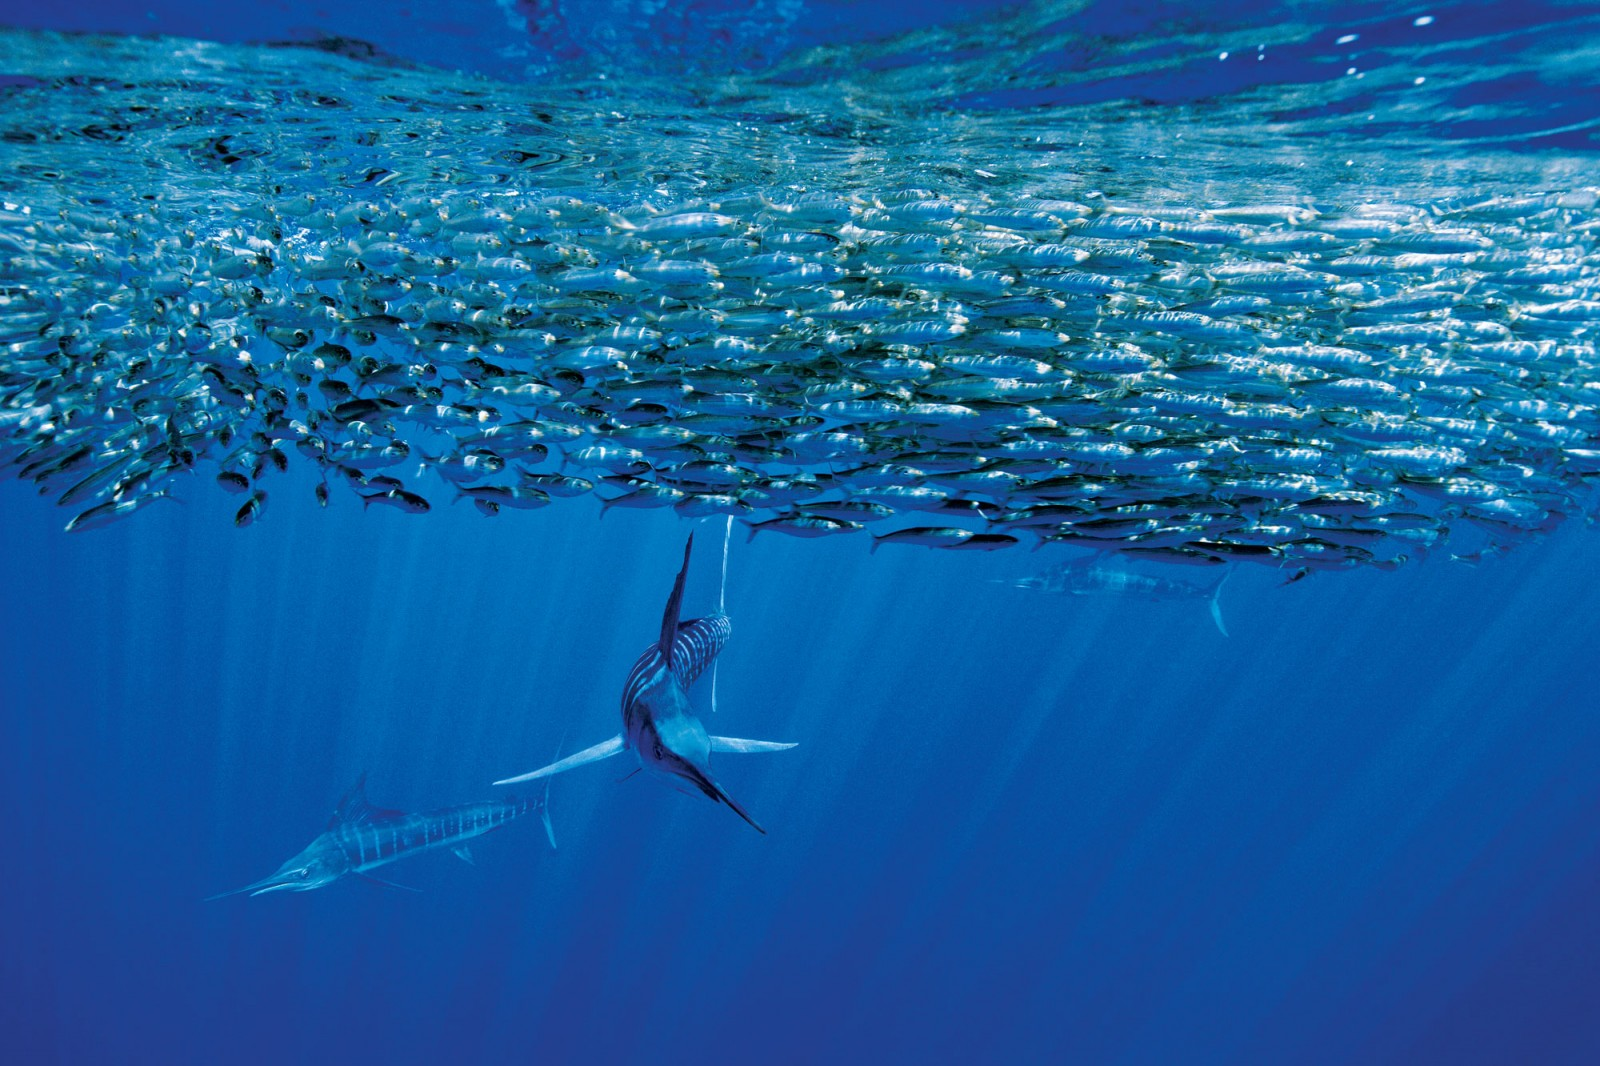 Nomads of the ocean, striped marlin cross the Pacific in their feeding migrations, visiting northern North Island waters during the months of January to May. While in New Zealand they feed primarily on squid, mackerel and another small fish known as saury. Data from satellite tags show they spend more than half their time swimming in the top ten metres of the sea, making only brief hunting forays to deeper water.